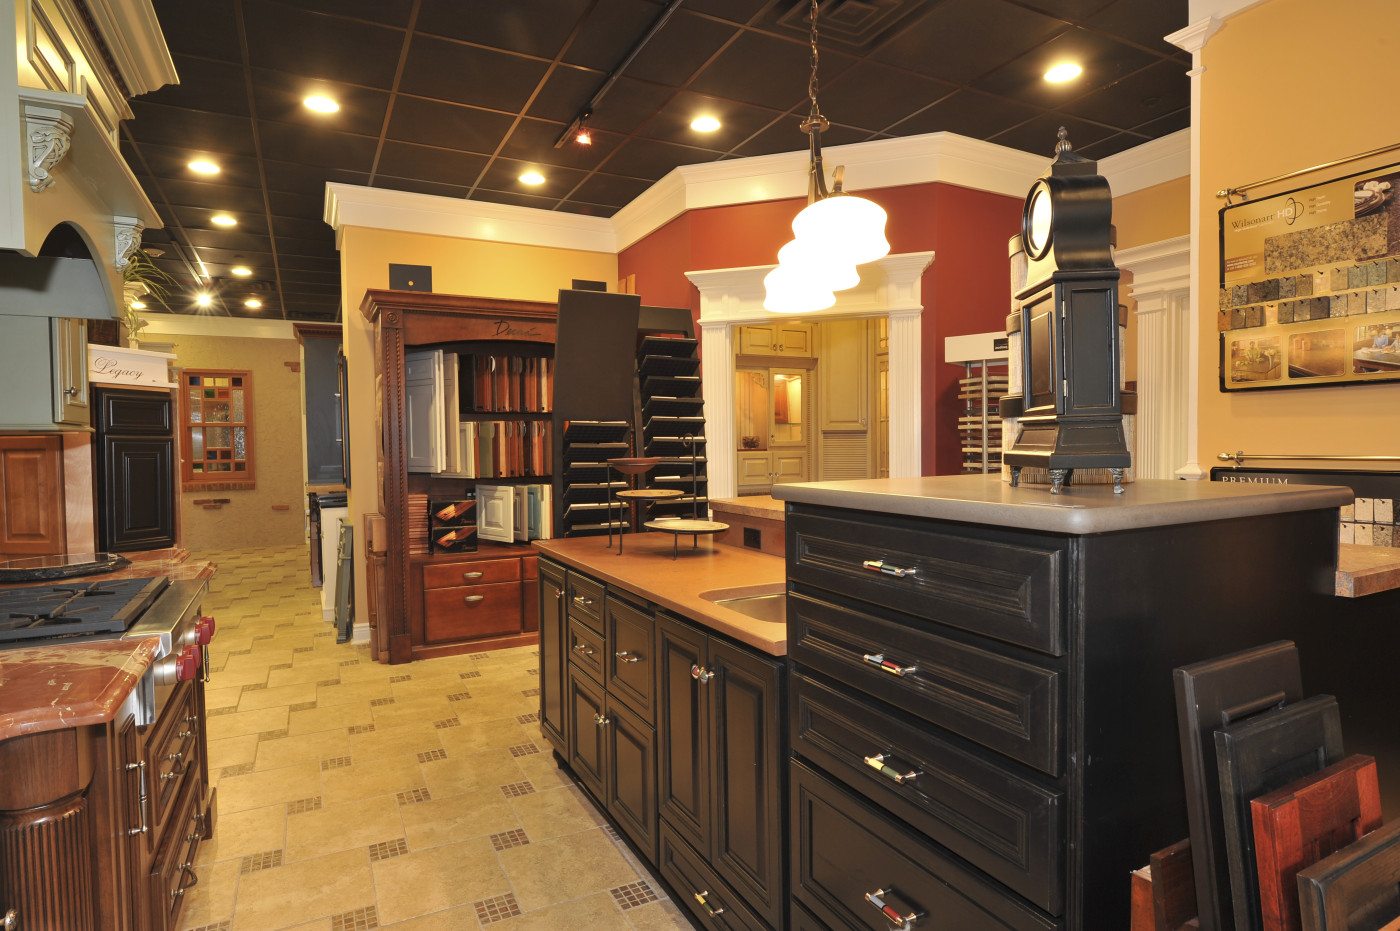 chic wooden kitchen bertch cabinets in black with silver handle and countertop under the pendant lamp for kitchen decor ideas